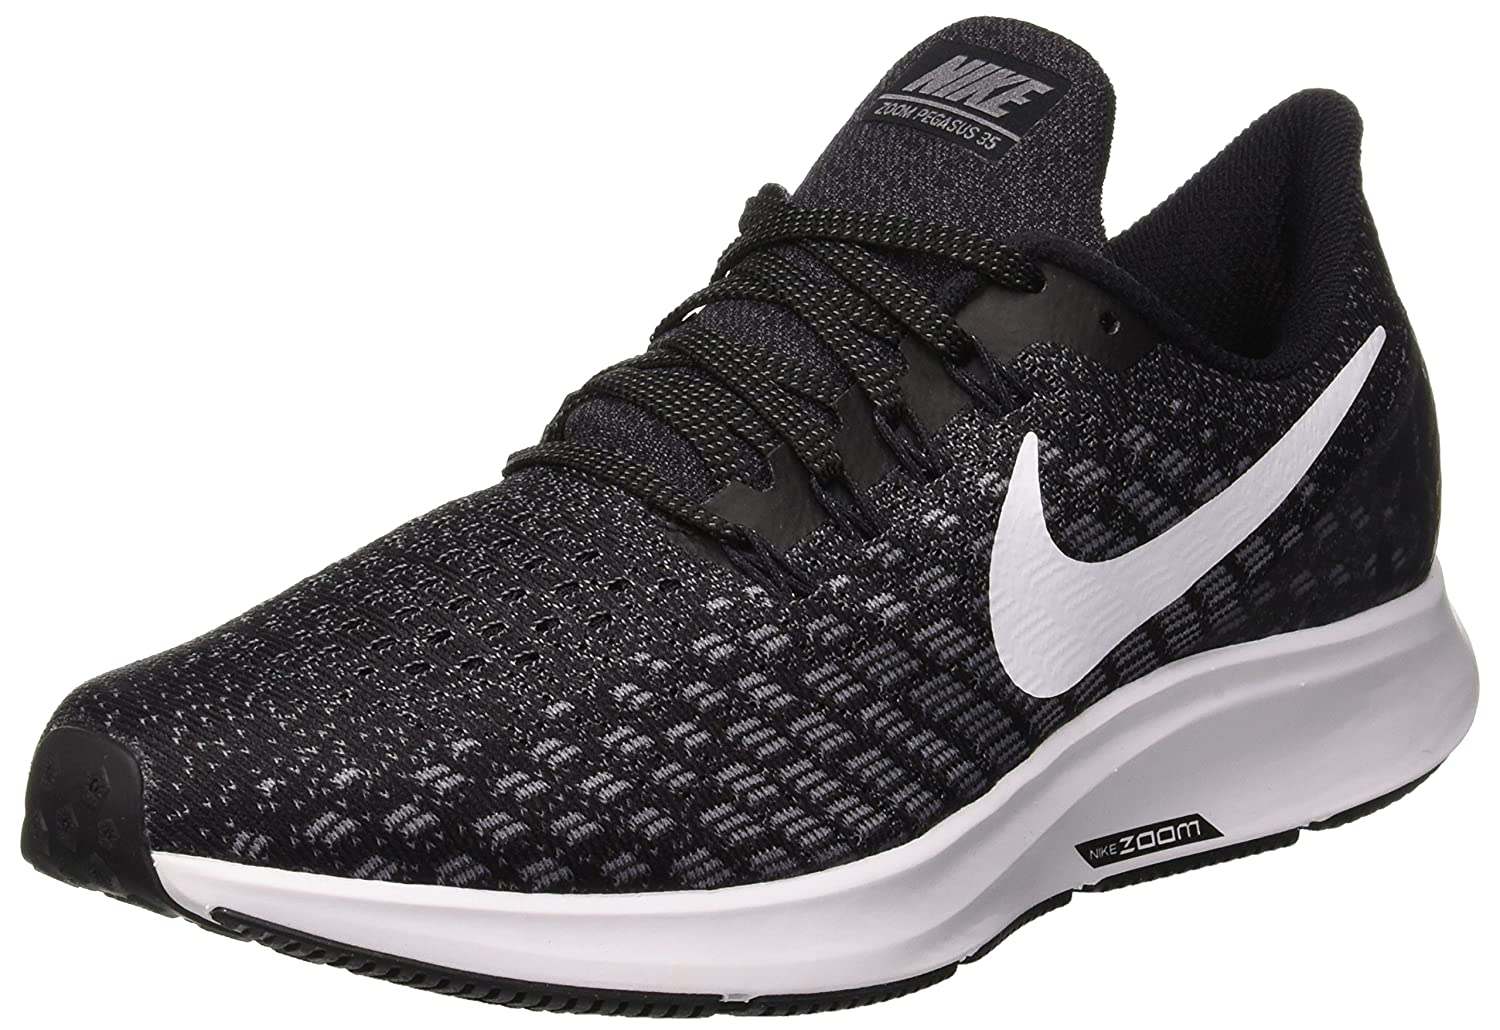 Nike Womens Air Zoom Pegasus 35 Running Shoes B00JE50XXQ 9.5 M US|Black/White/Gunsmoke/Oil Grey